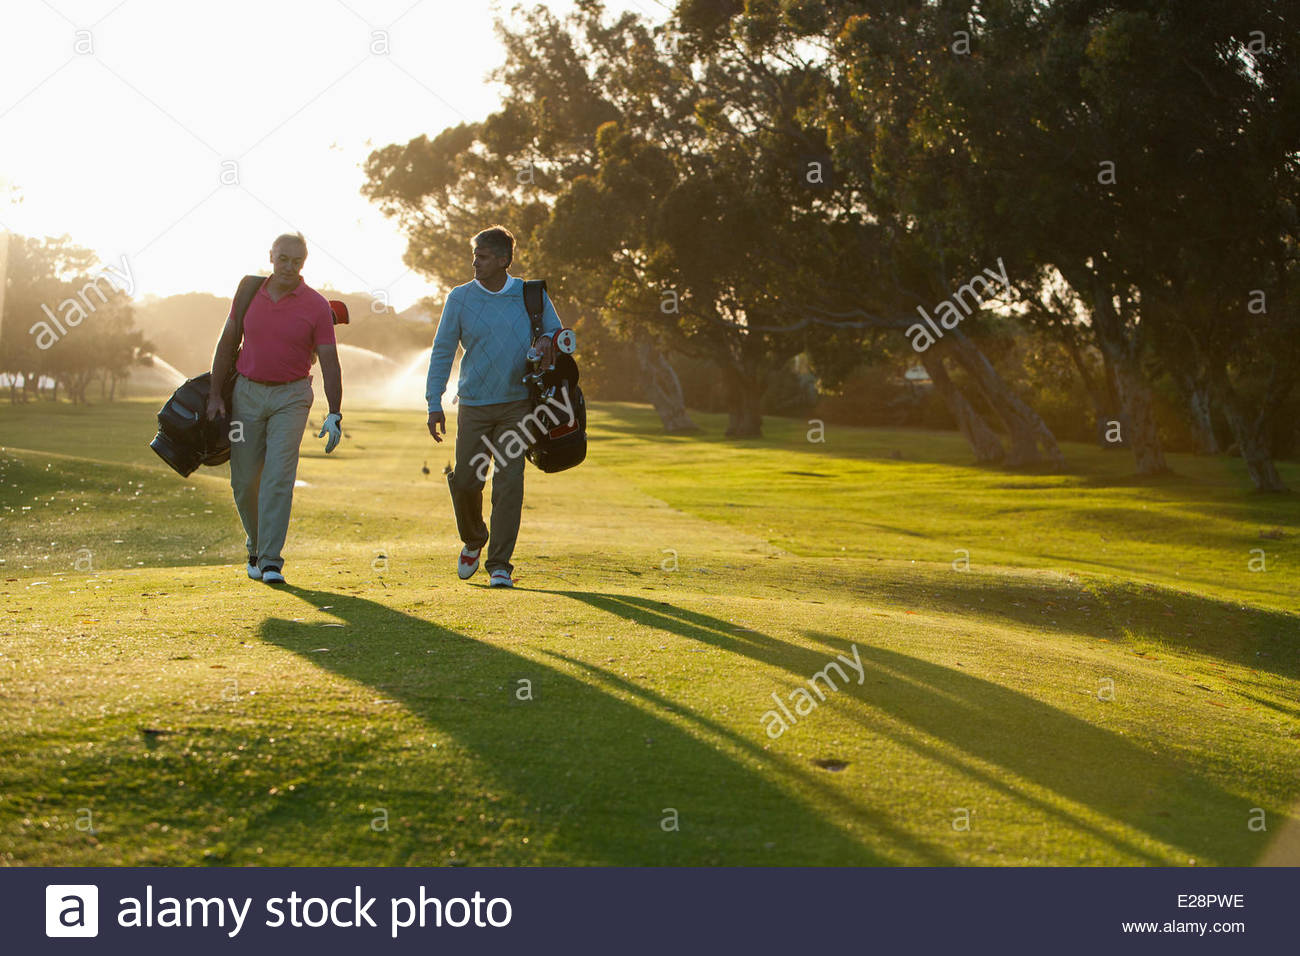 Hommes portant des sacs de golf on golf course Photo Stock